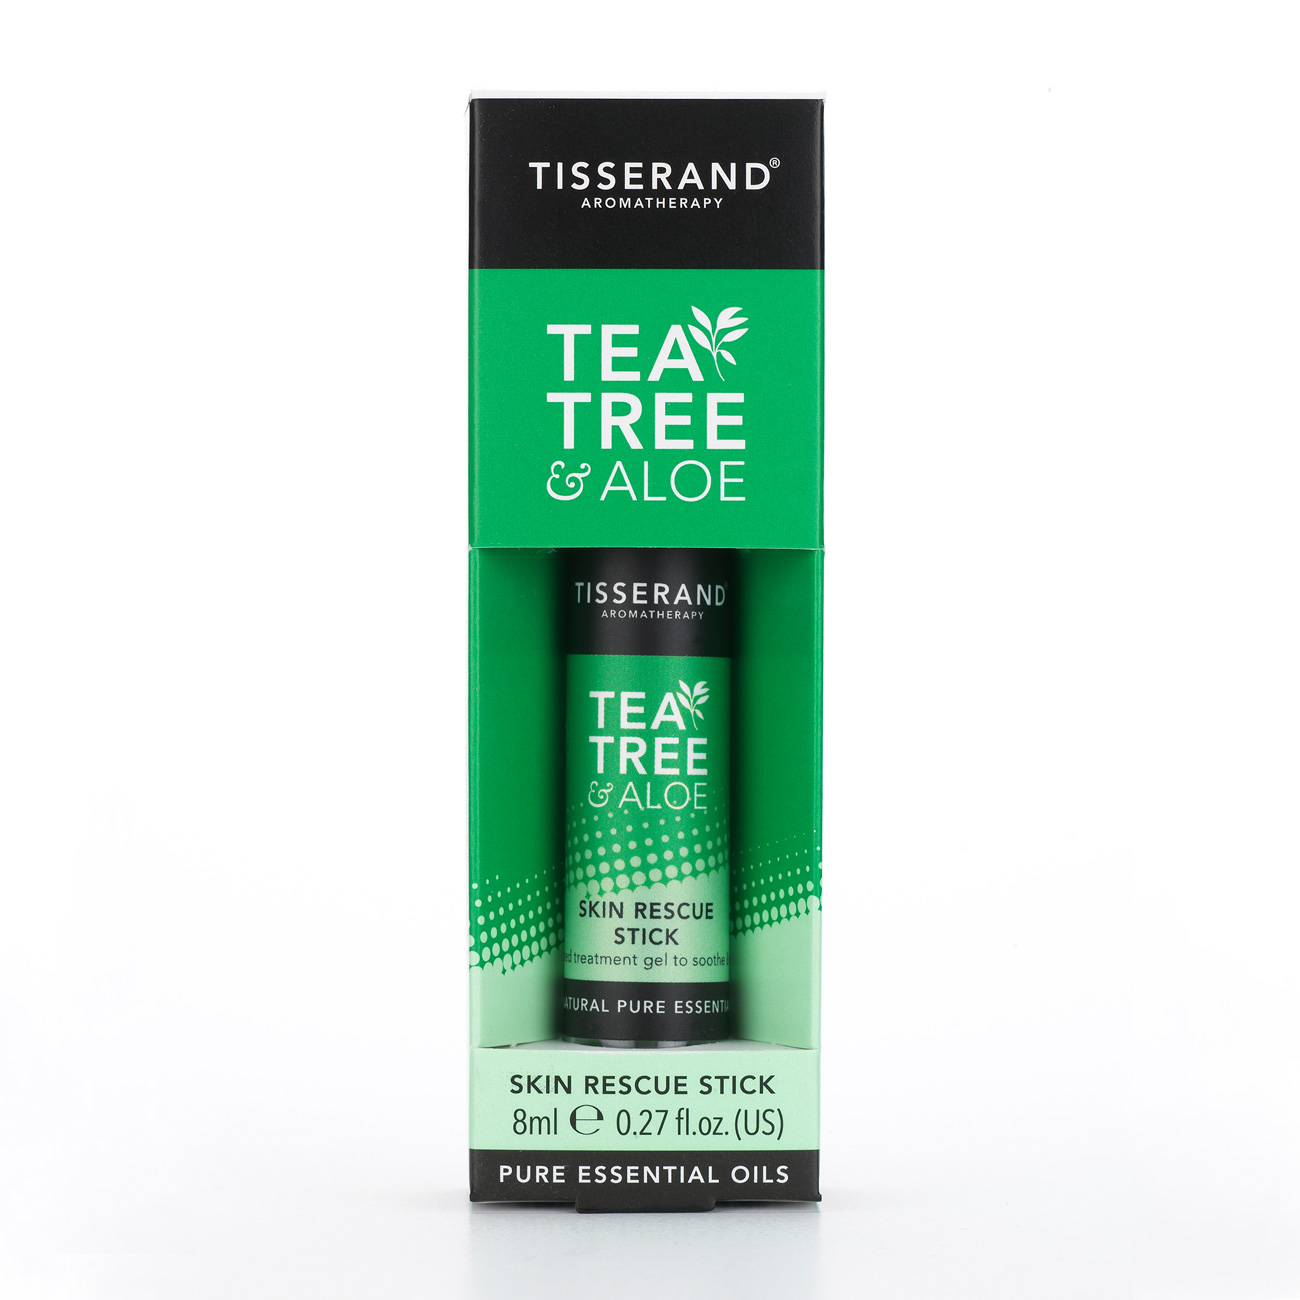 Tisserand-Aromatherapy-Tea-Tree-&-Aloe-Skin-Rescue-Stick_1300x1300 web